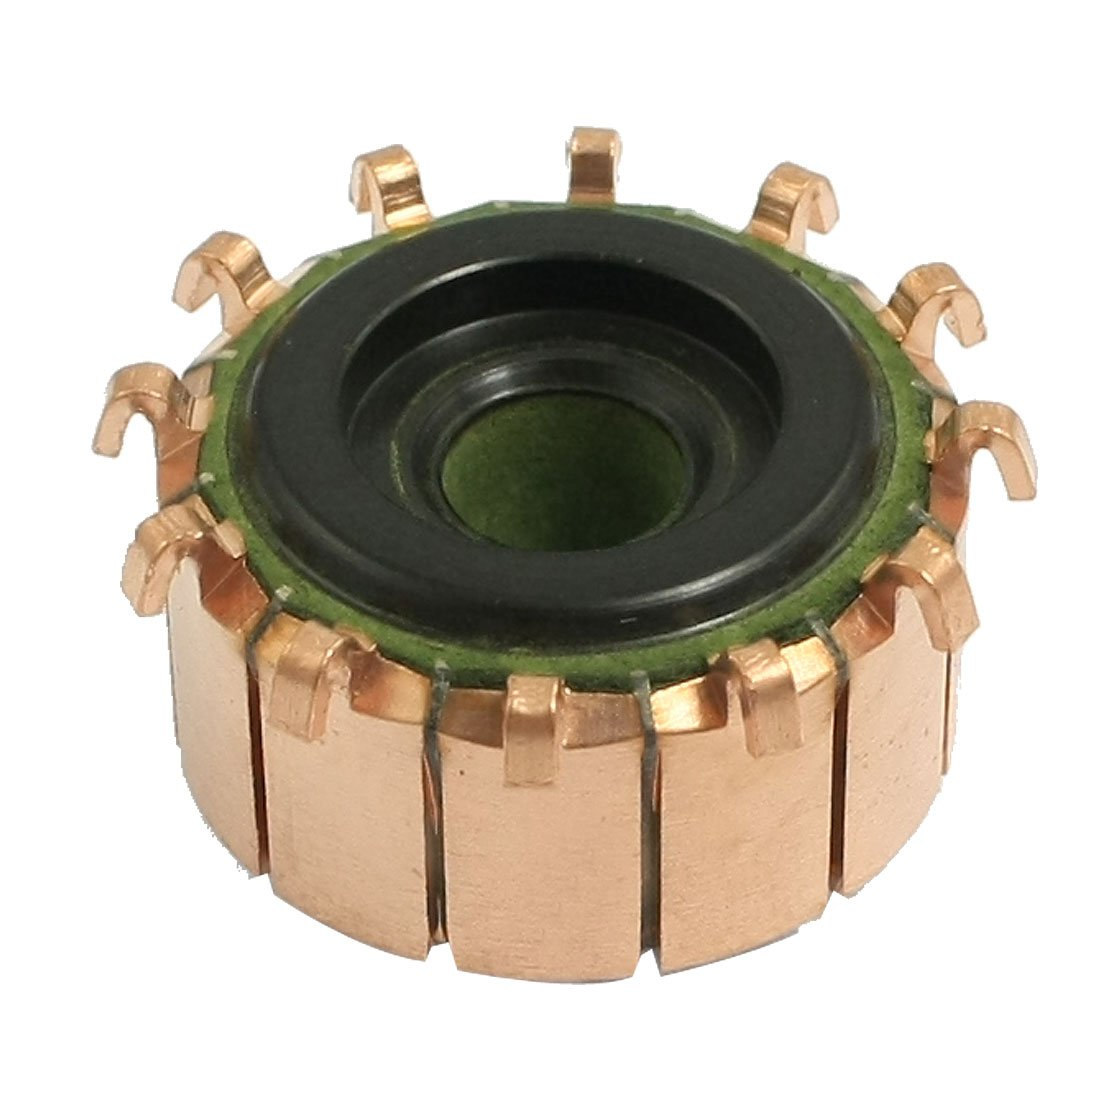 uxcell 6.35mm x 21.5mm x 12mm Copper Case Auto Alternator Motor Power Tool Commutator a12102200ux0820